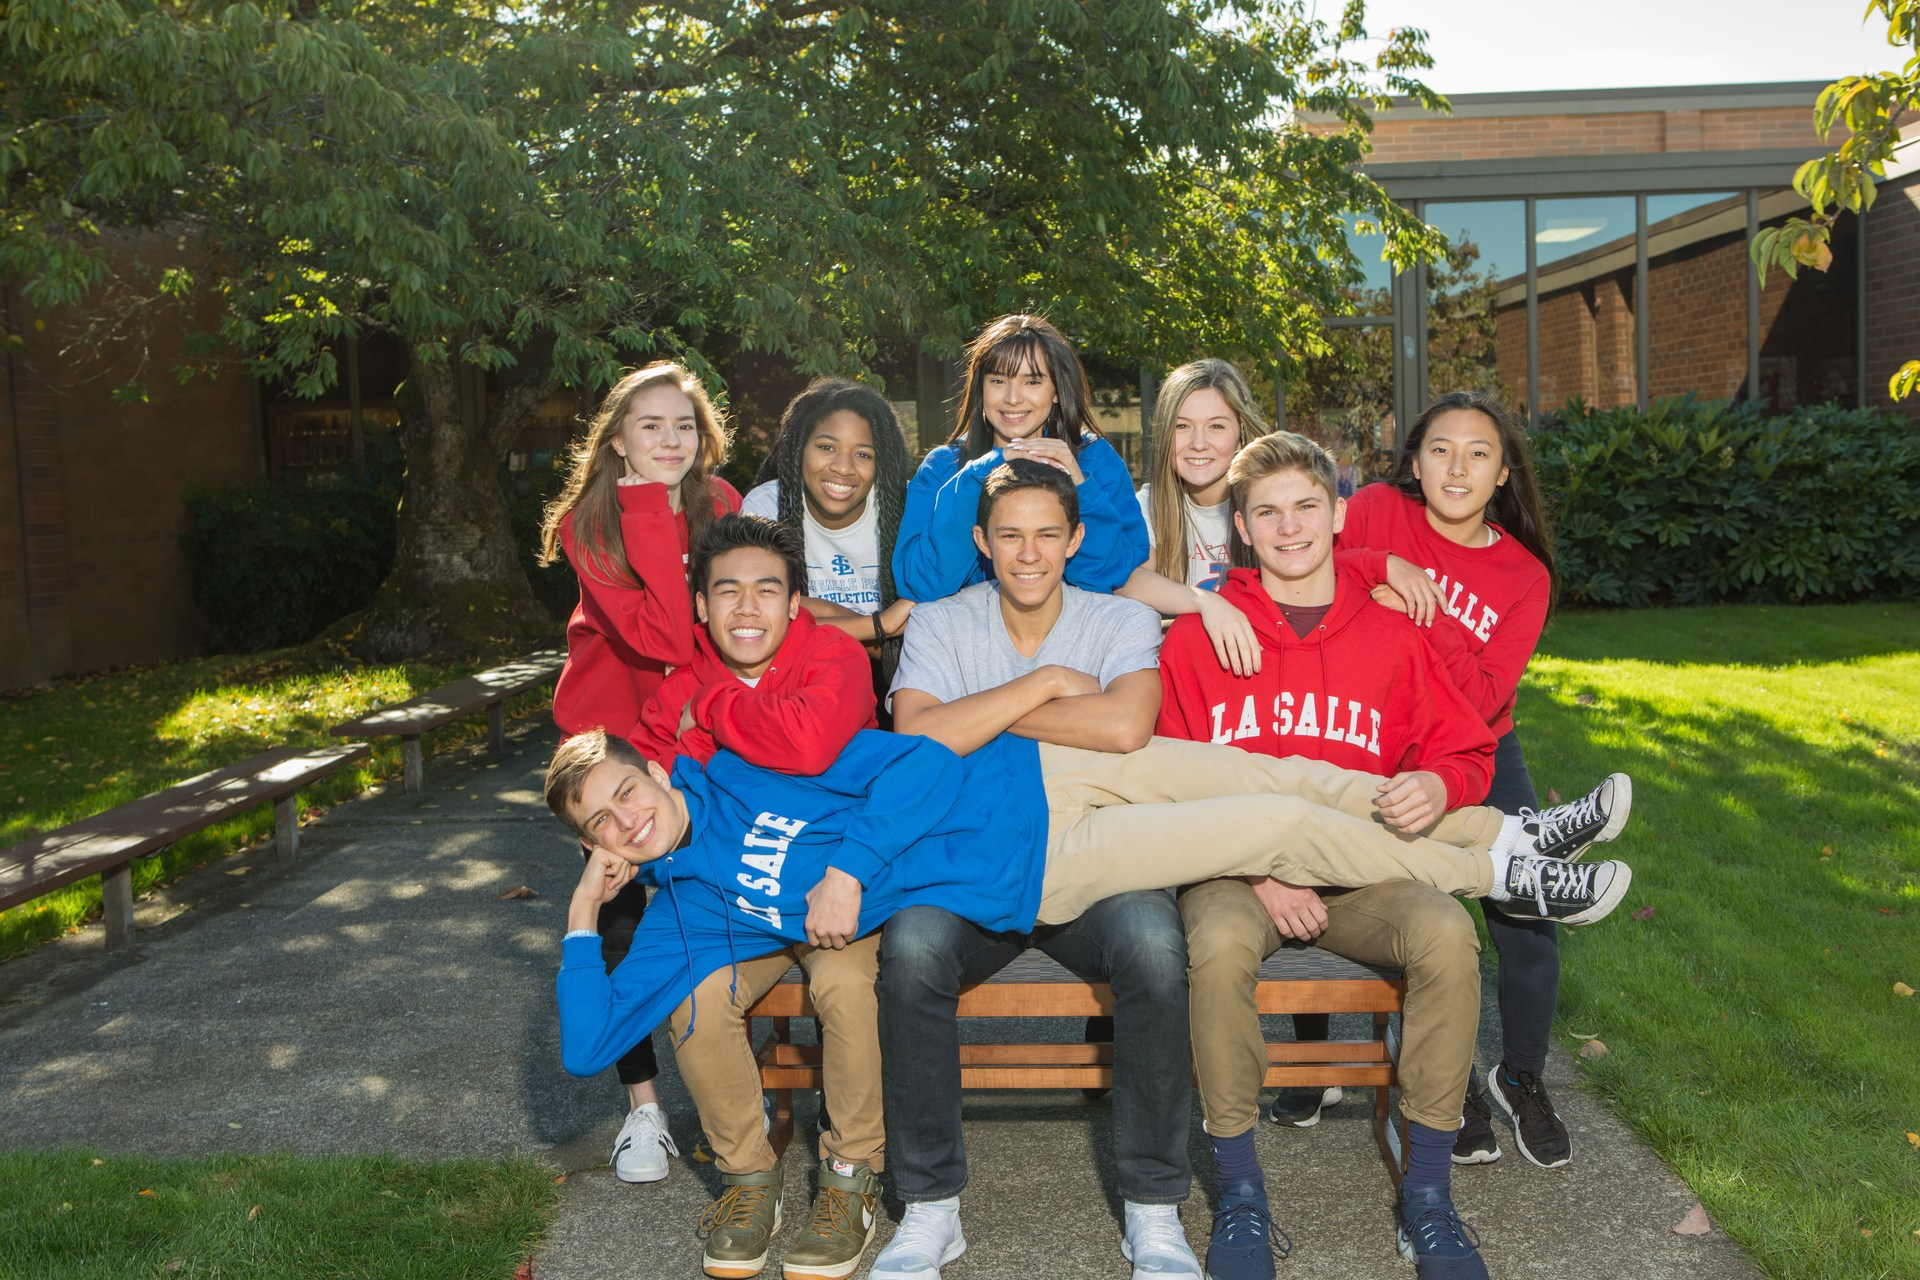 Students sitting on bench.